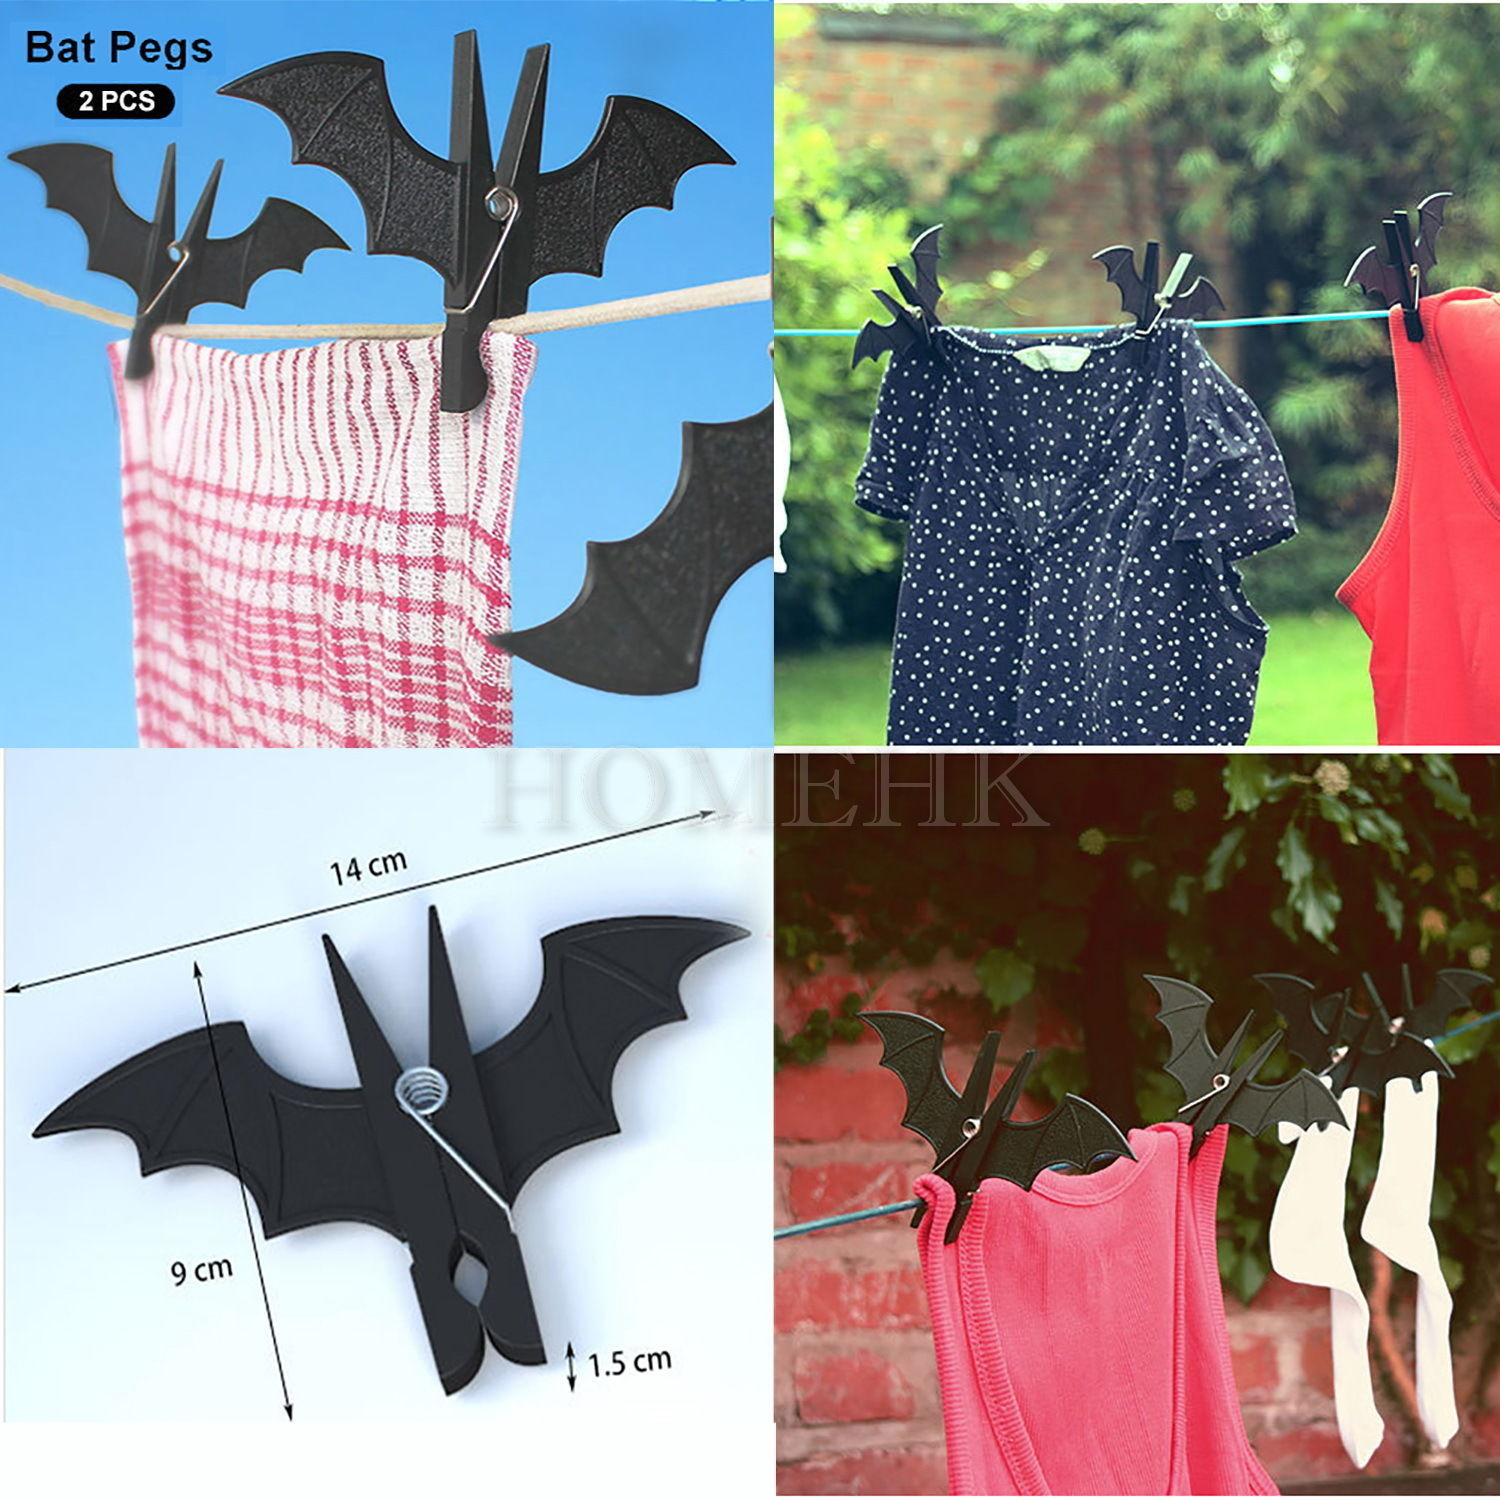 Bat Peg 2pcs Pack Vampire Wash Clothes line Laundry Hanger Bookmark Paper Clip